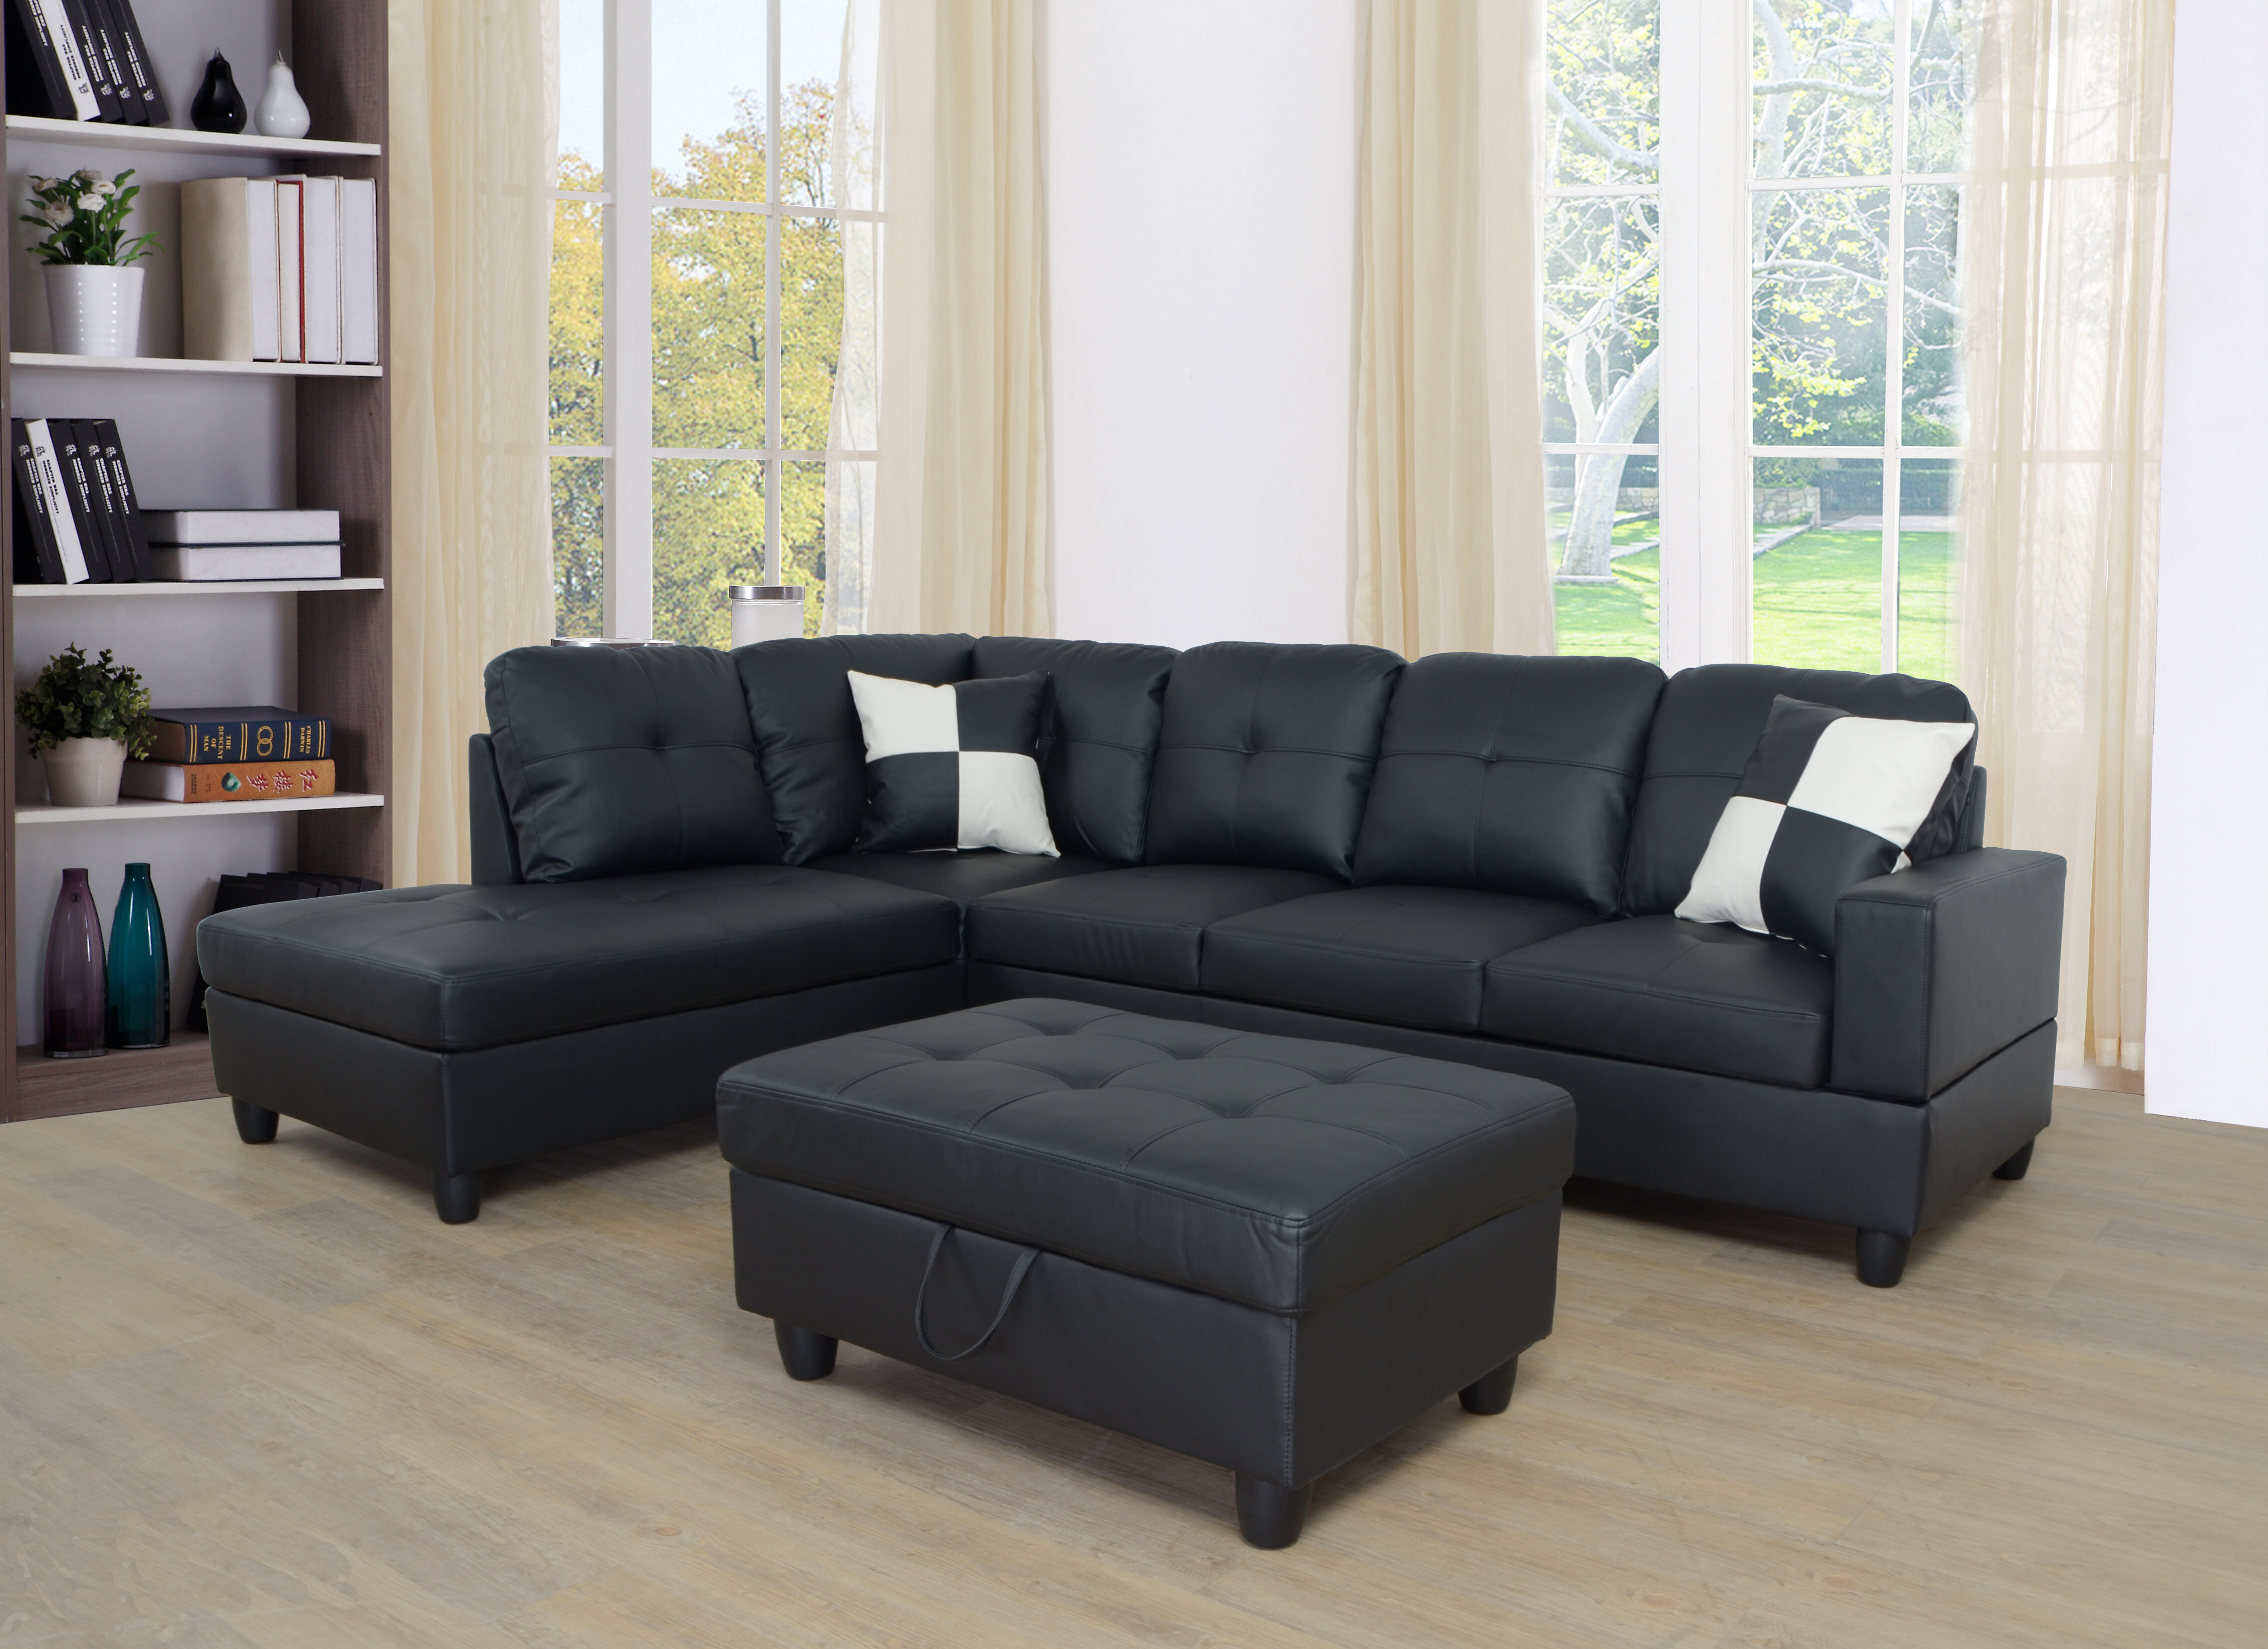 Ebern Designs Wellington Living Room Sectional With Ottoman